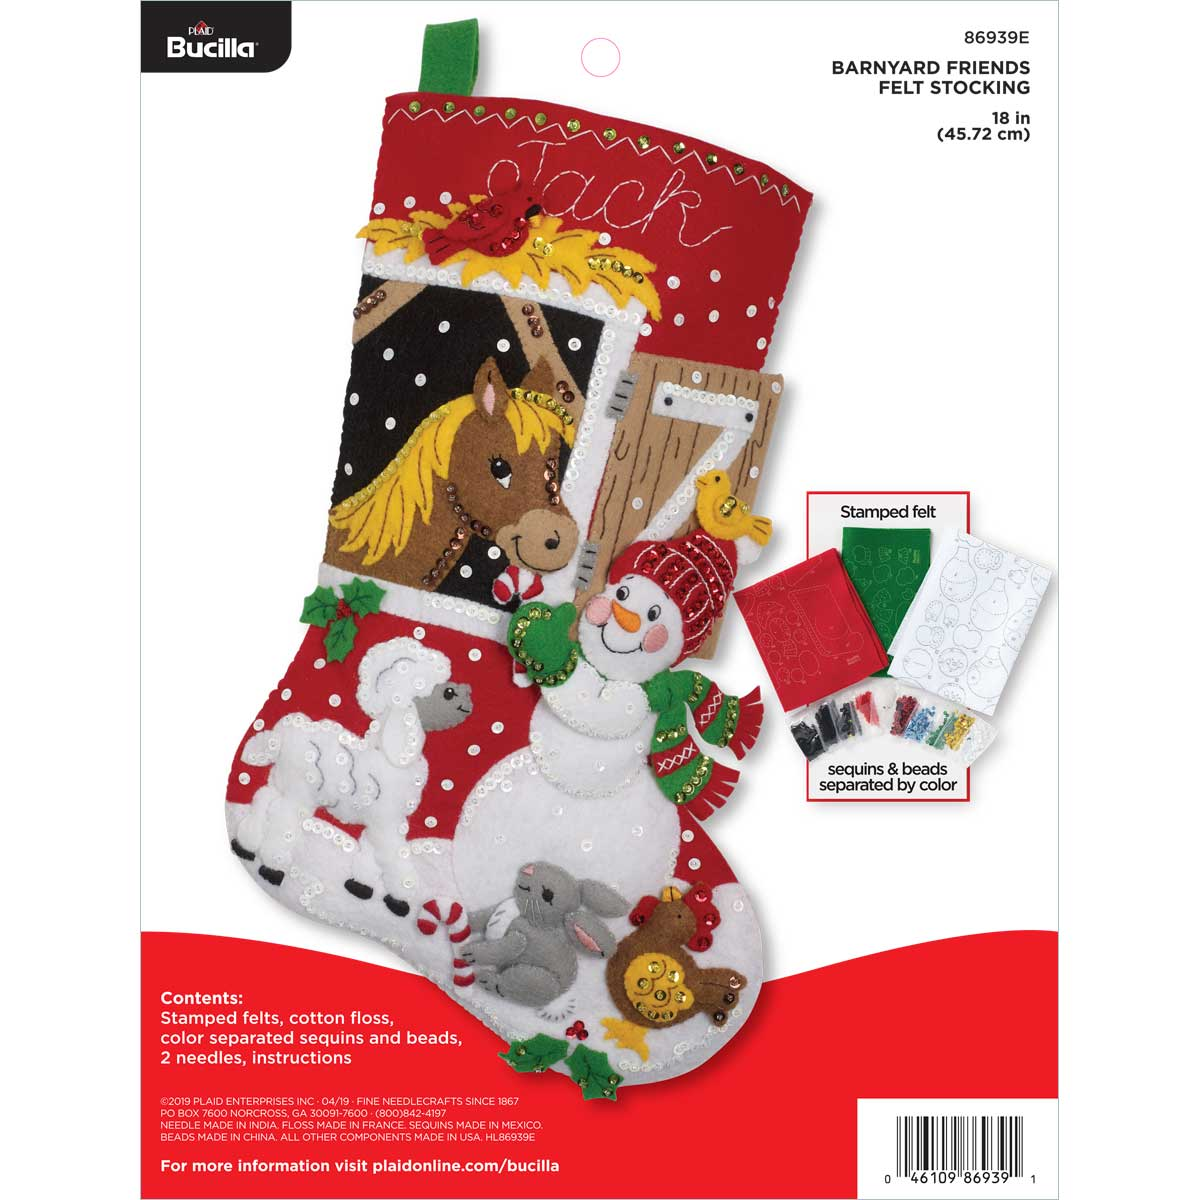 Bucilla ® Seasonal - Felt - Stocking Kits - Barnyard Friends - 86939E